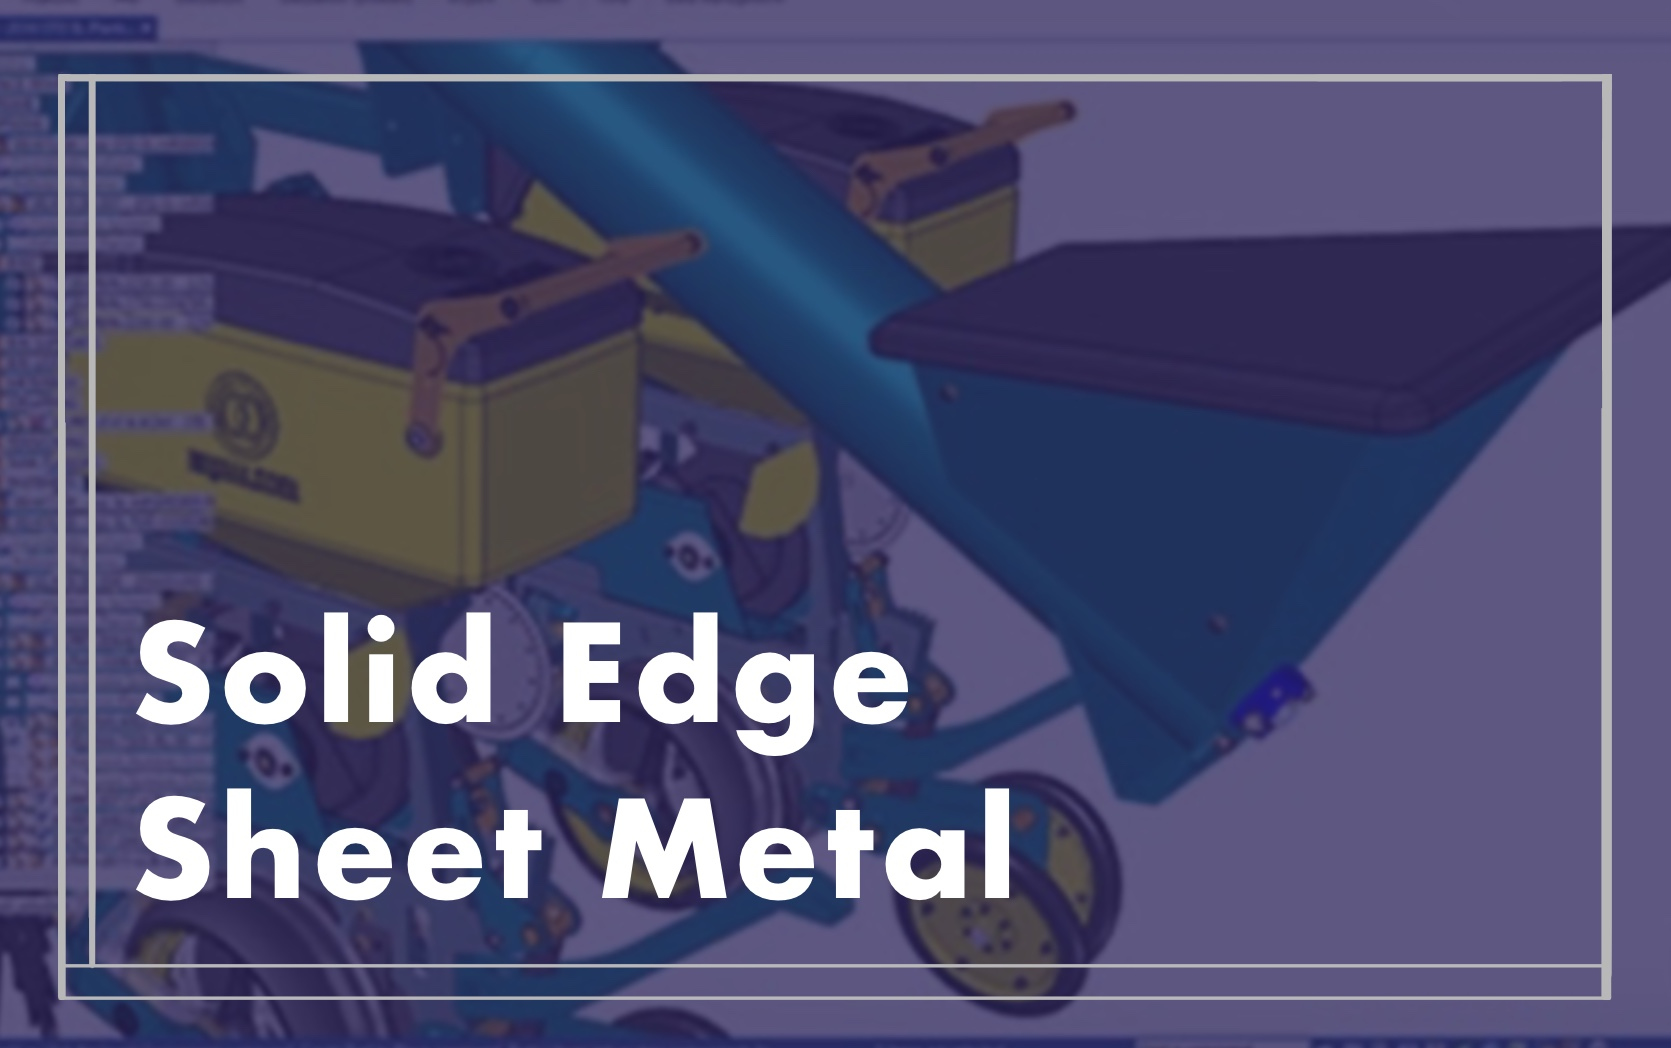 Solid Edge Sheet Metal Course image